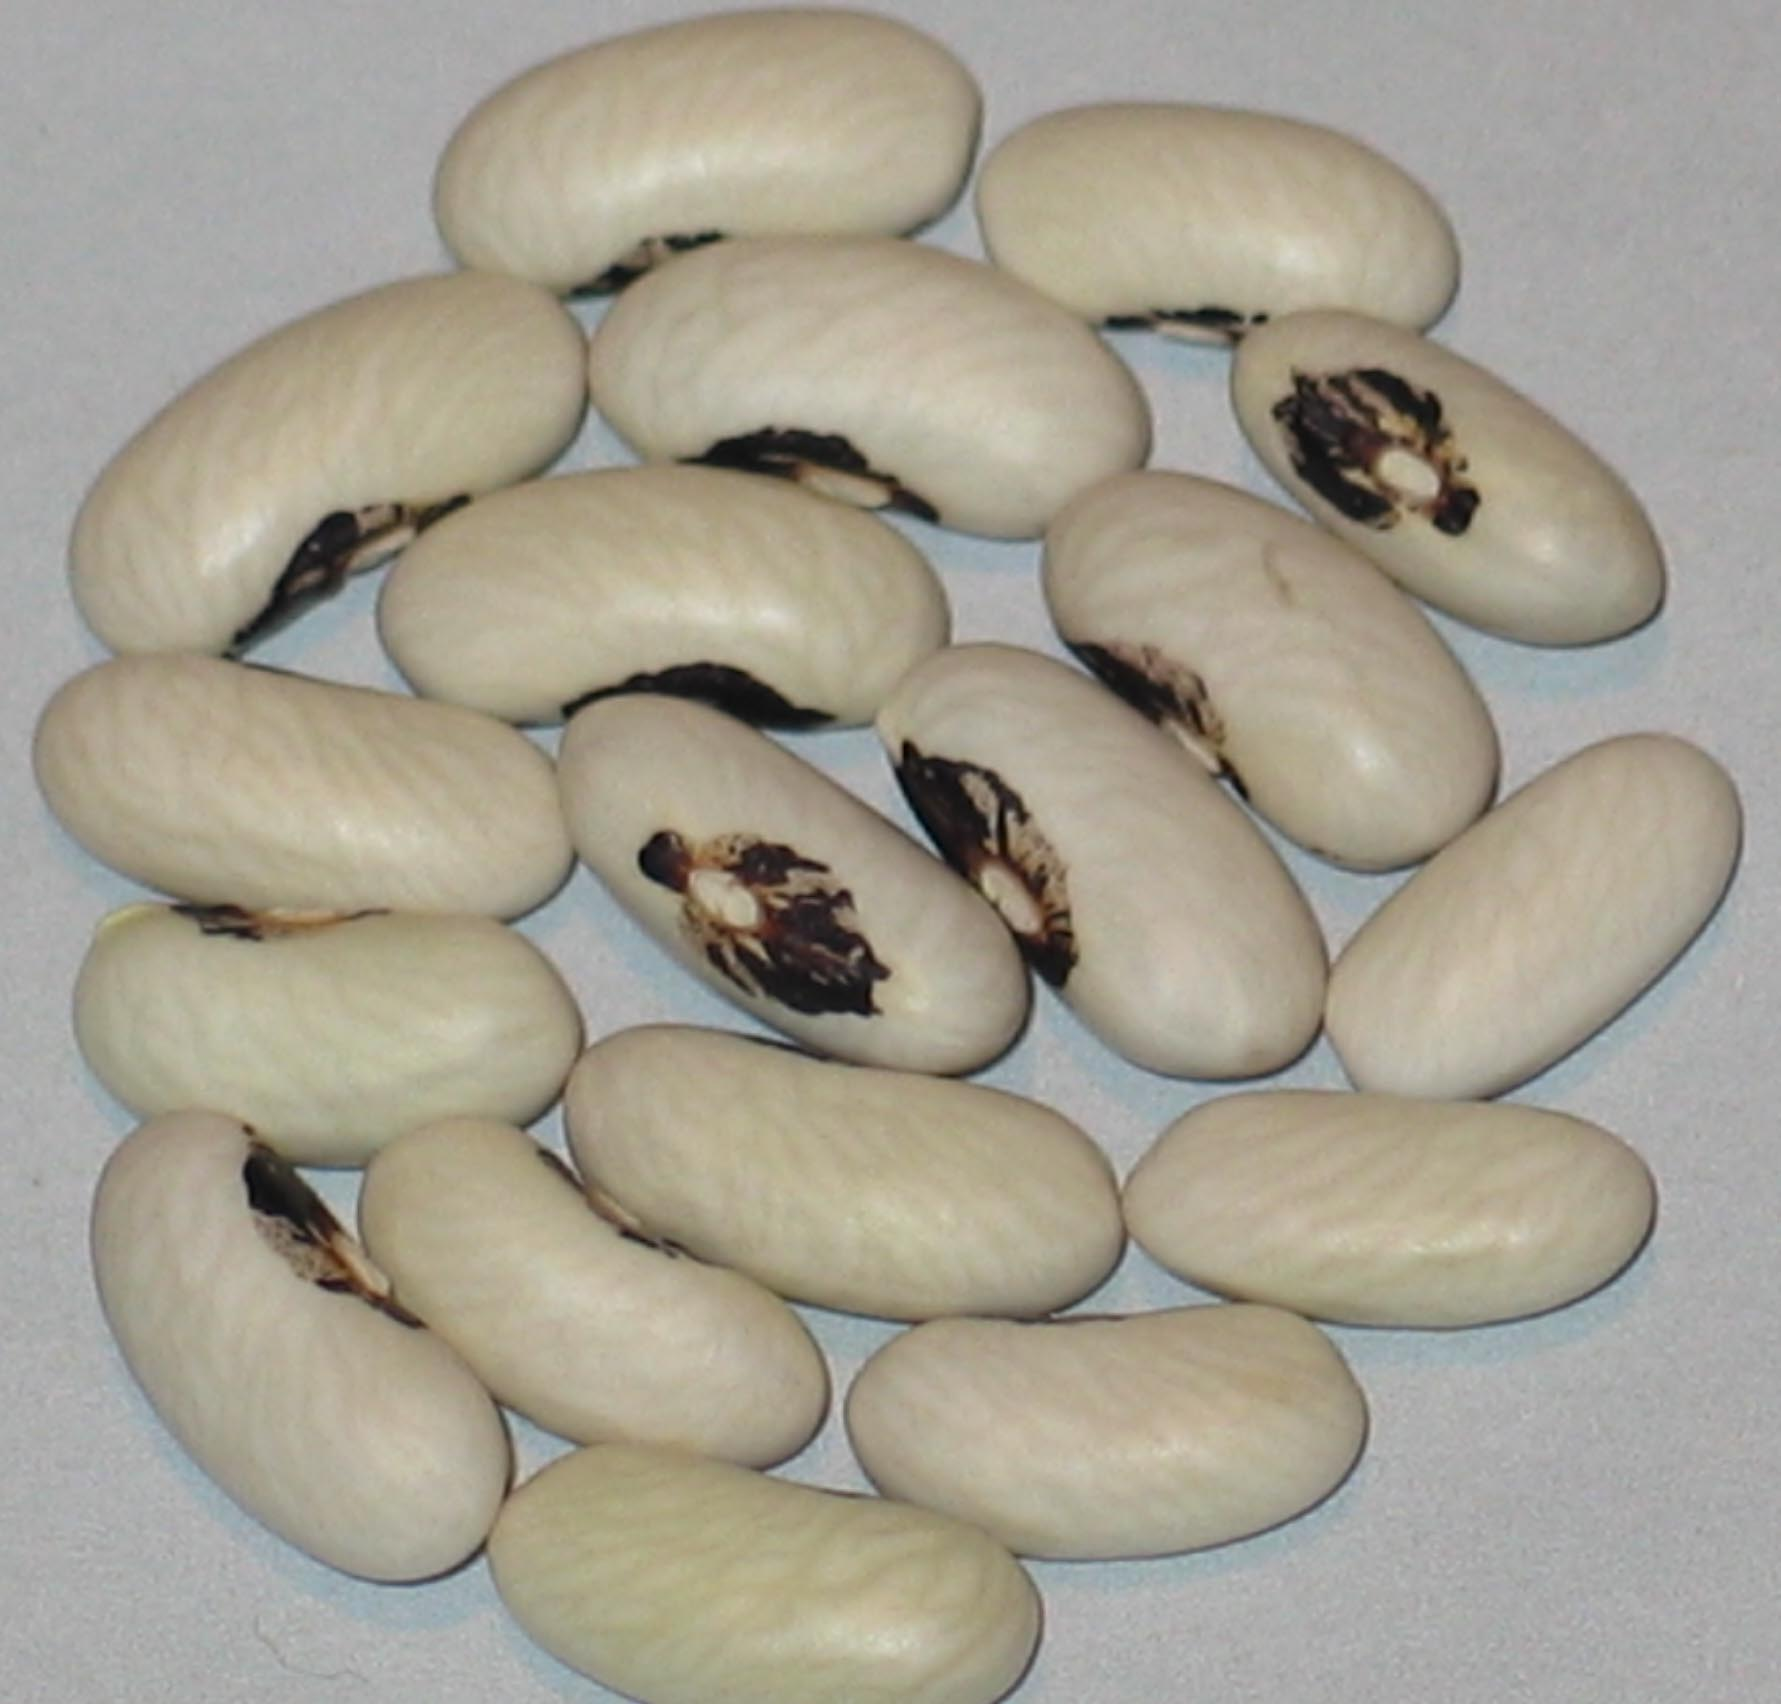 image of Apple Creek beans